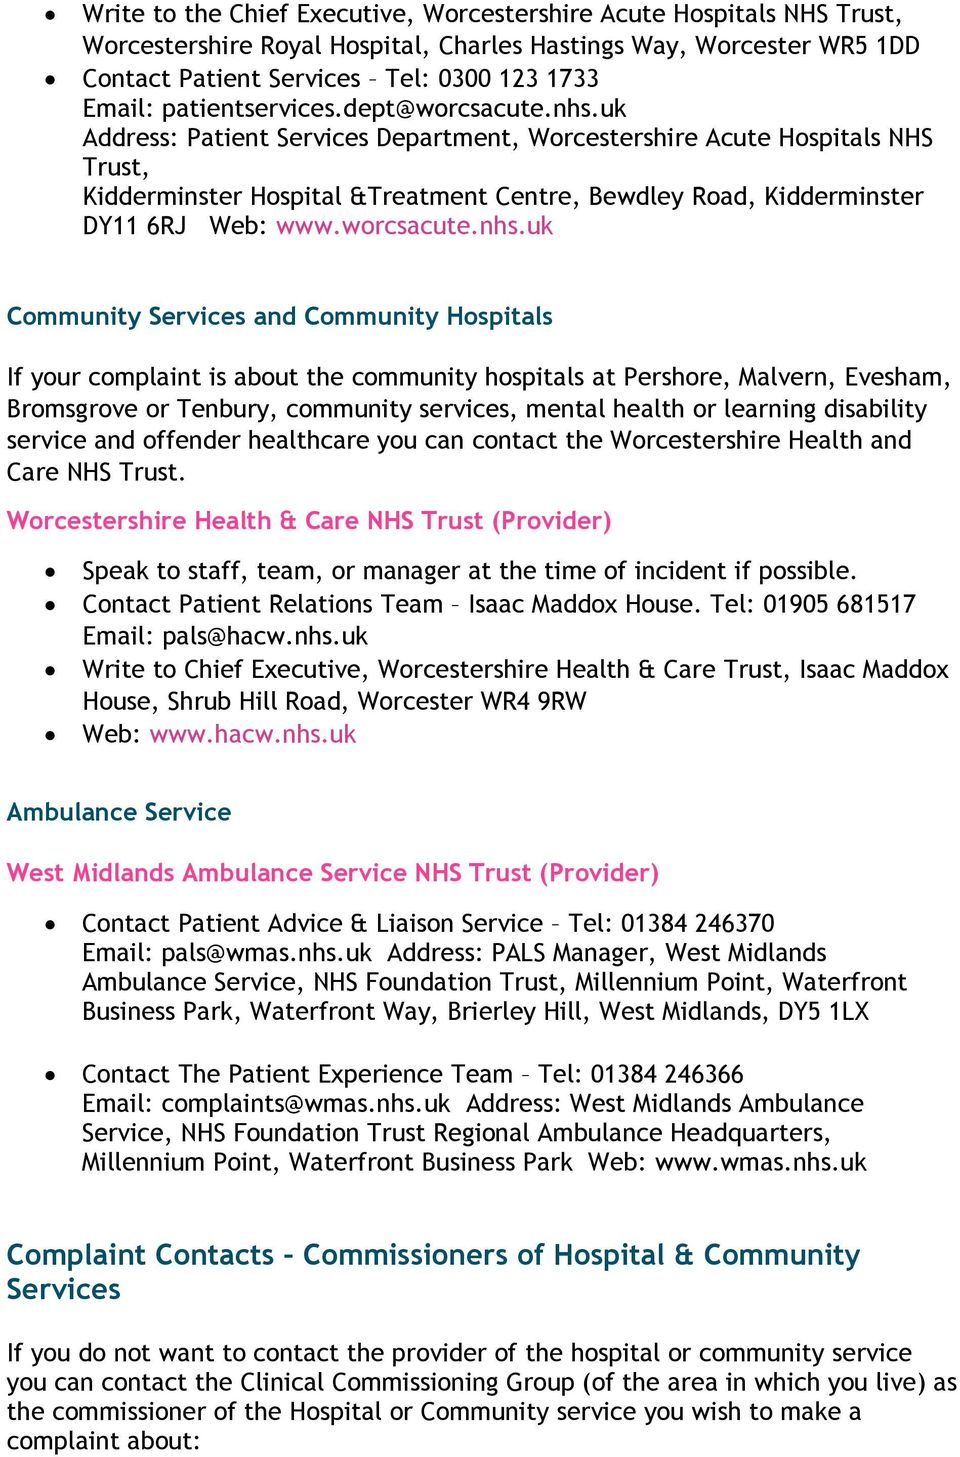 uk Address: Patient Services Department, Worcestershire Acute Hospitals NHS Trust, Kidderminster Hospital &Treatment Centre, Bewdley Road, Kidderminster DY11 6RJ Web: www.worcsacute.nhs.